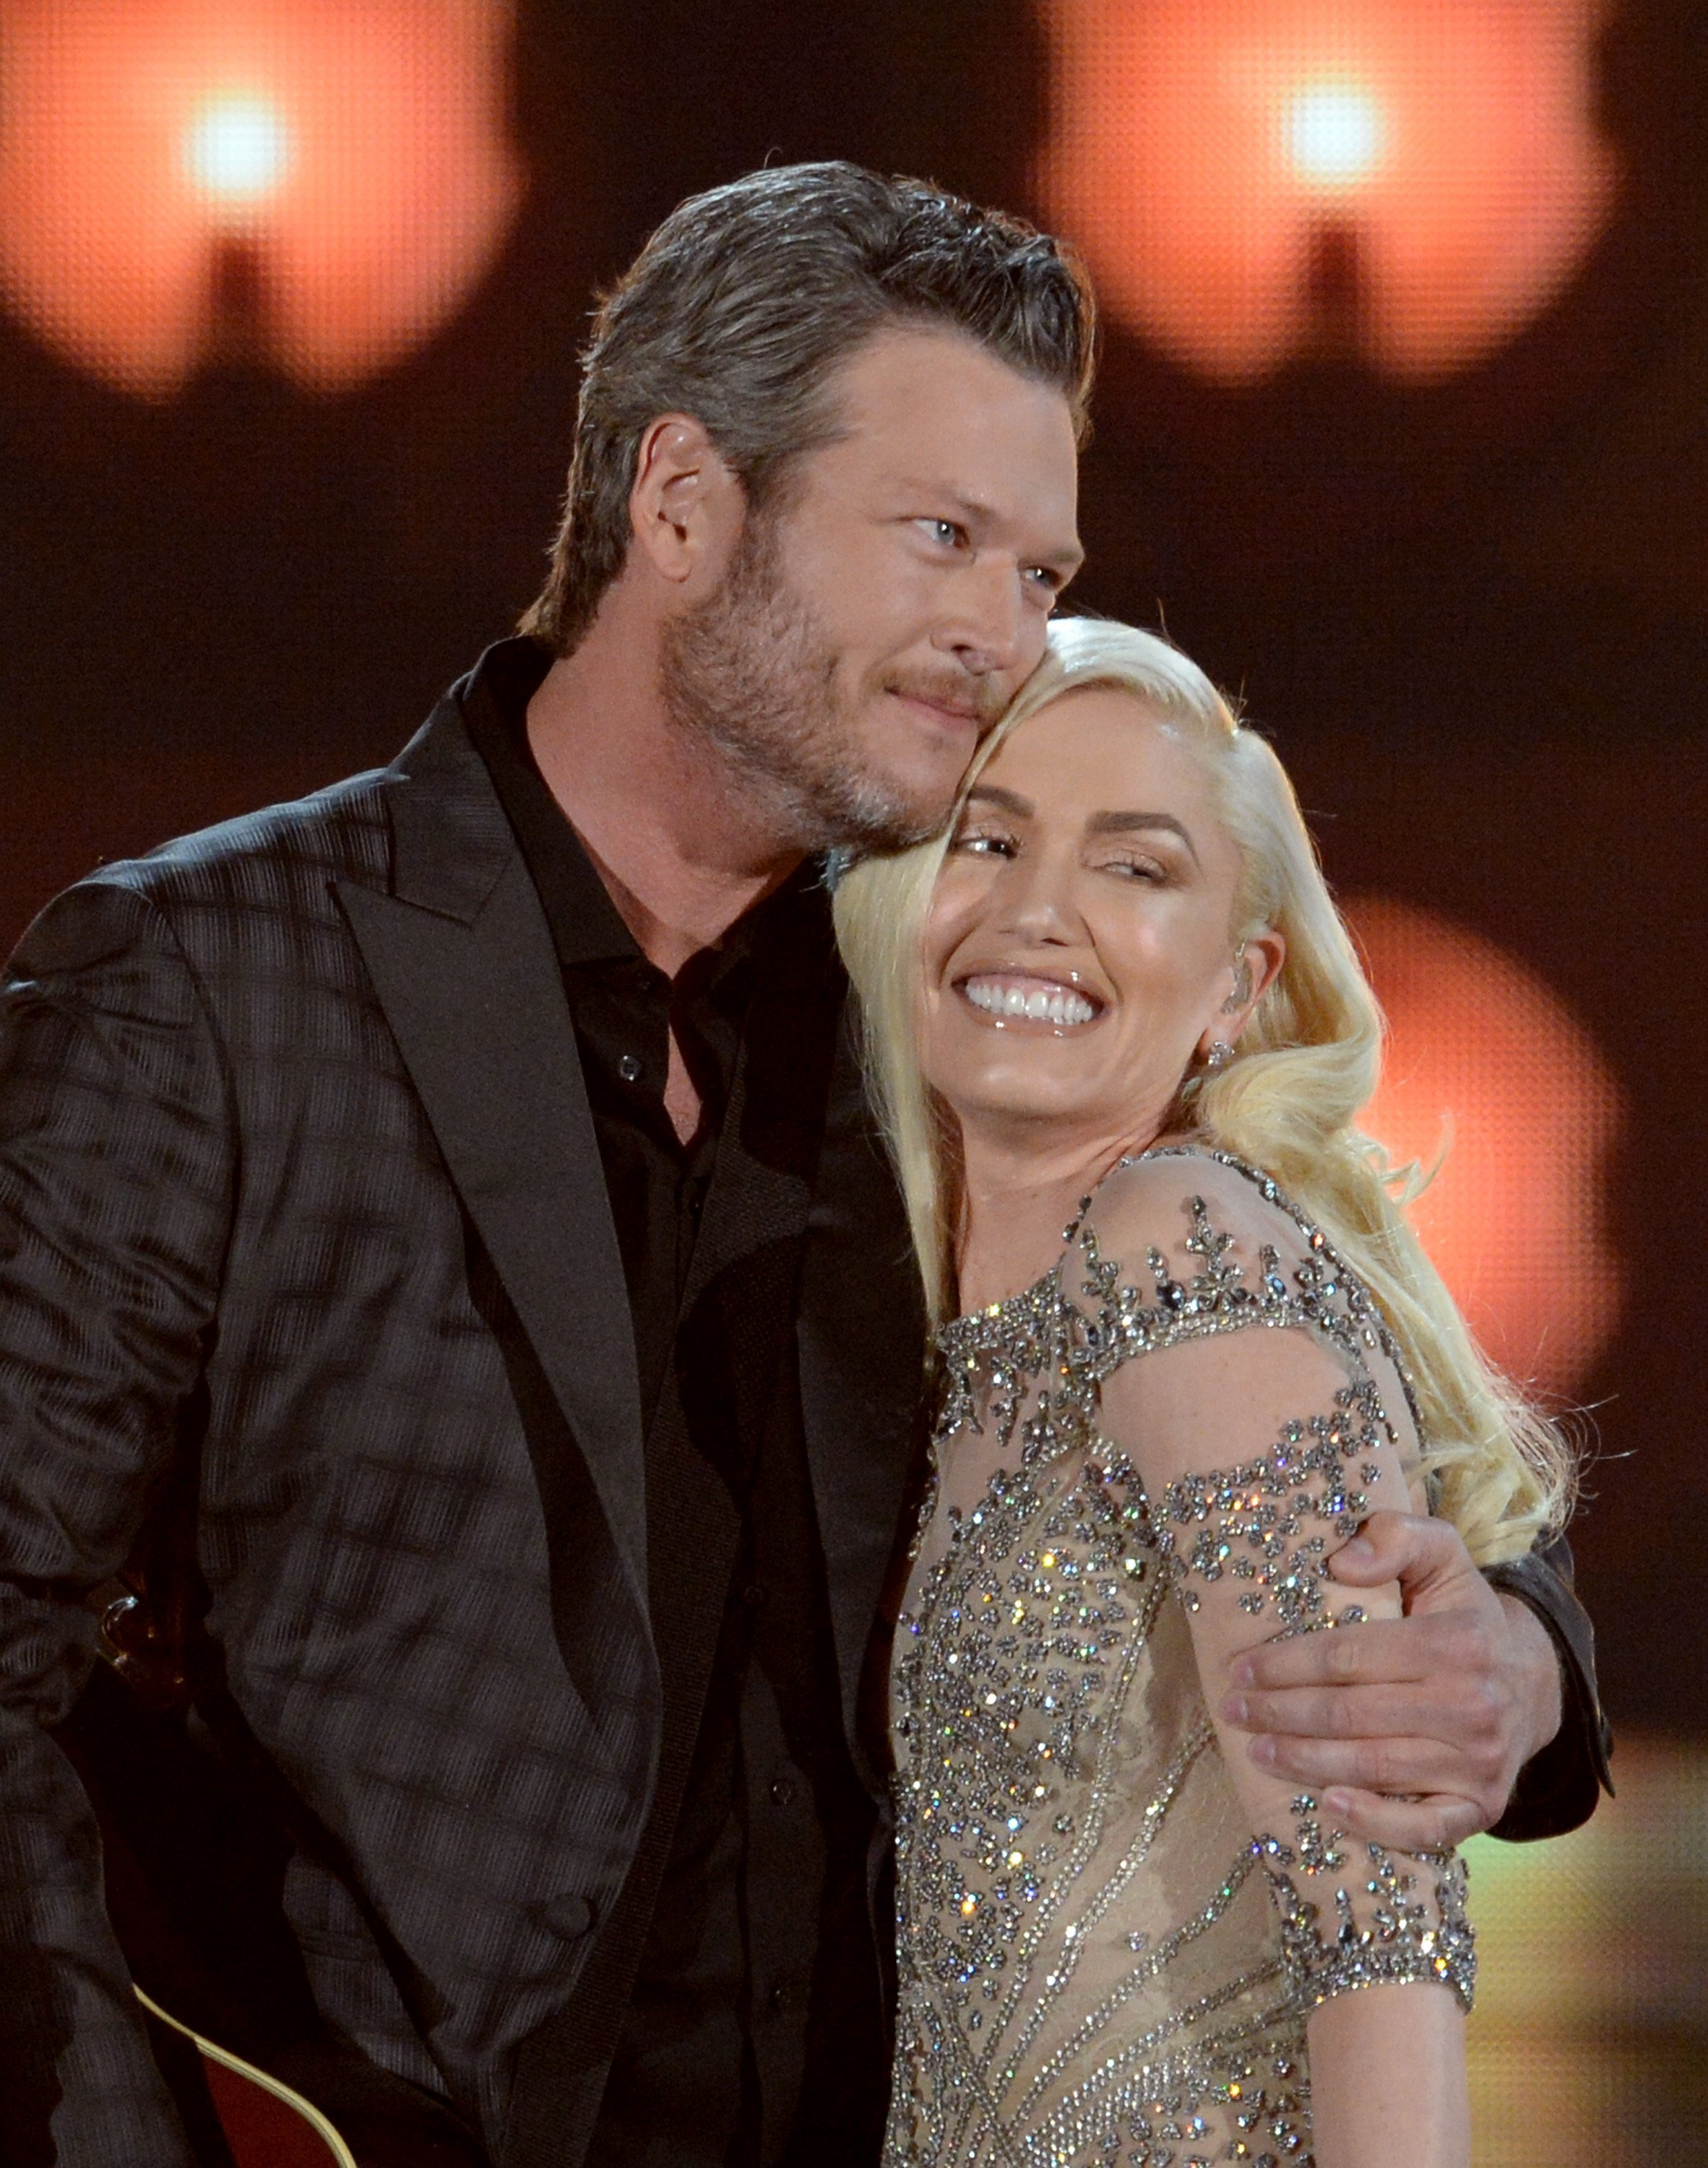 Blake Shelton and Gwen Stefani perform onstage during the 2016 Billboard Music Awards on May 22, 2016 in Las Vegas, Nevada. | Source: Getty Images.